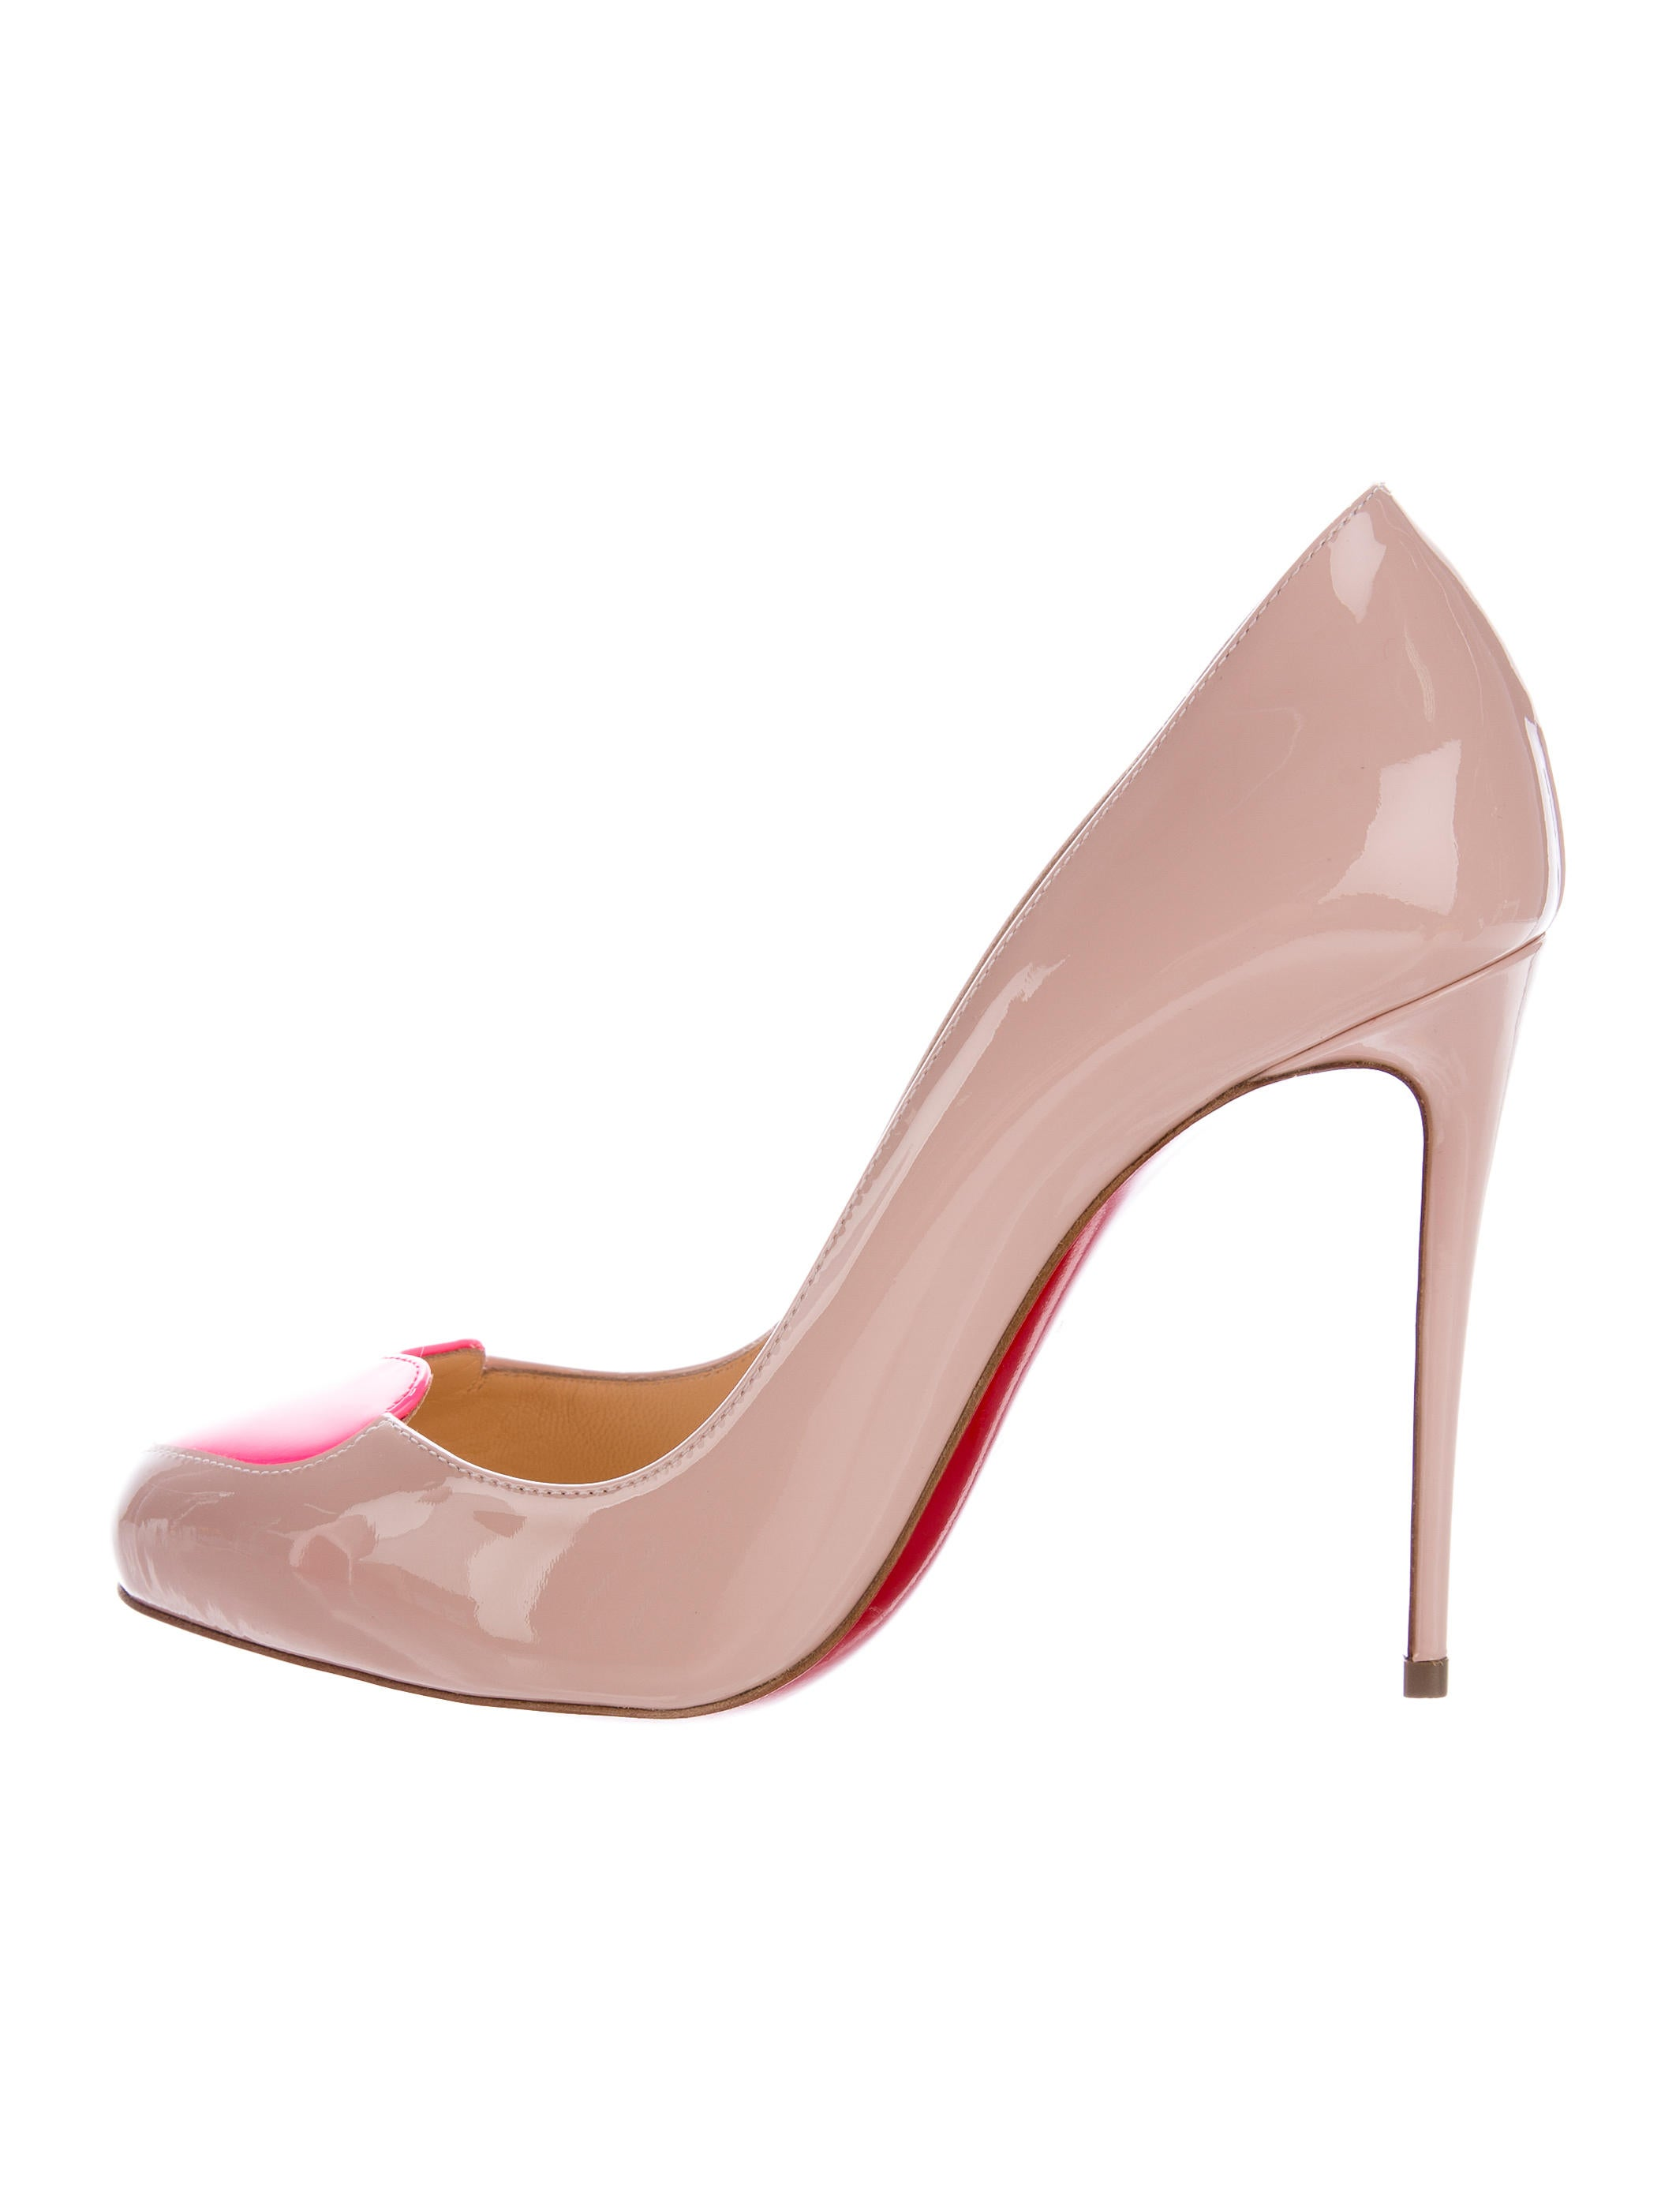 142dce8ce9d2 Christian Louboutin Doracora Heart Pumps - Shoes - CHT73371